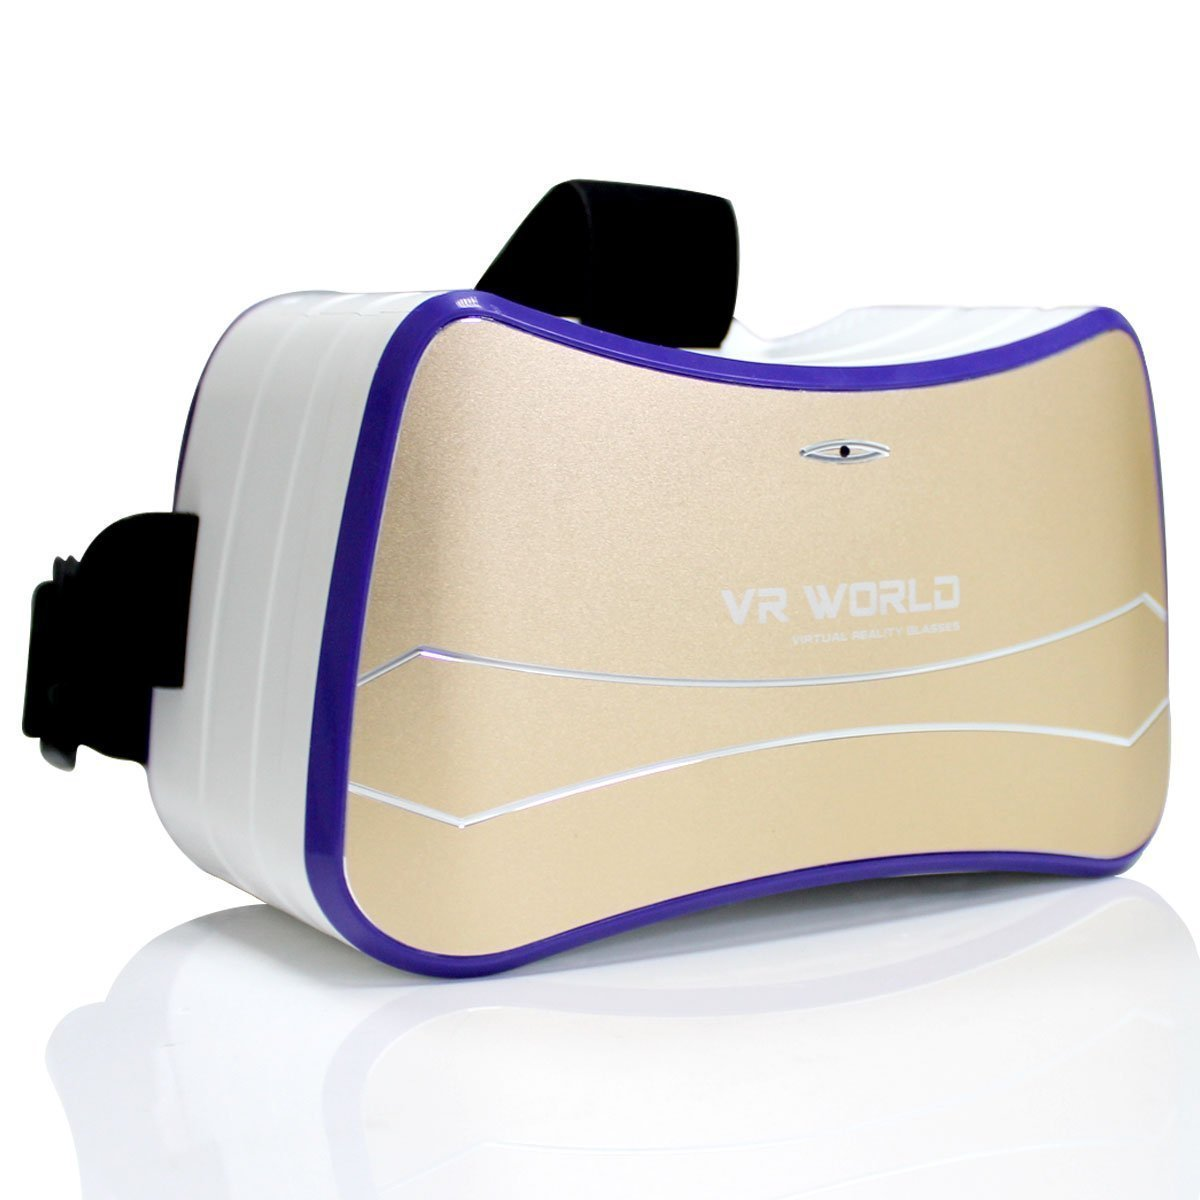 T.Face Space 3D glasses vr glasses virtual reality glasses all in one vr headset goggles box for games and video by T.Face (Image #2)